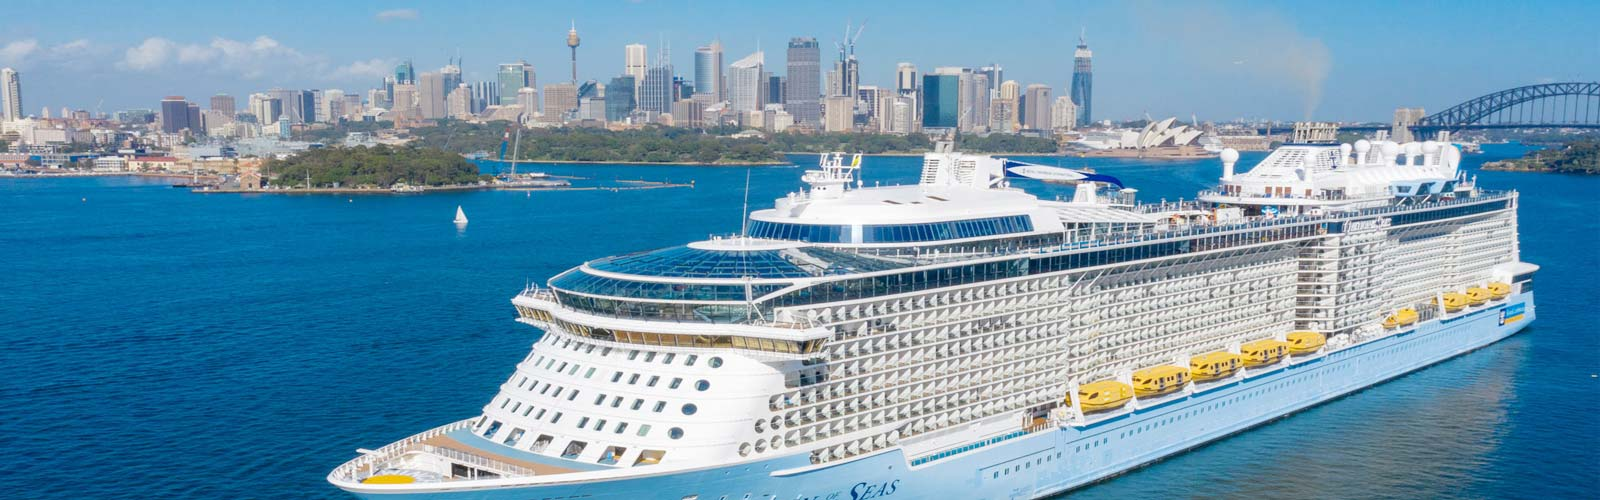 Cruise-Ships-techsupport